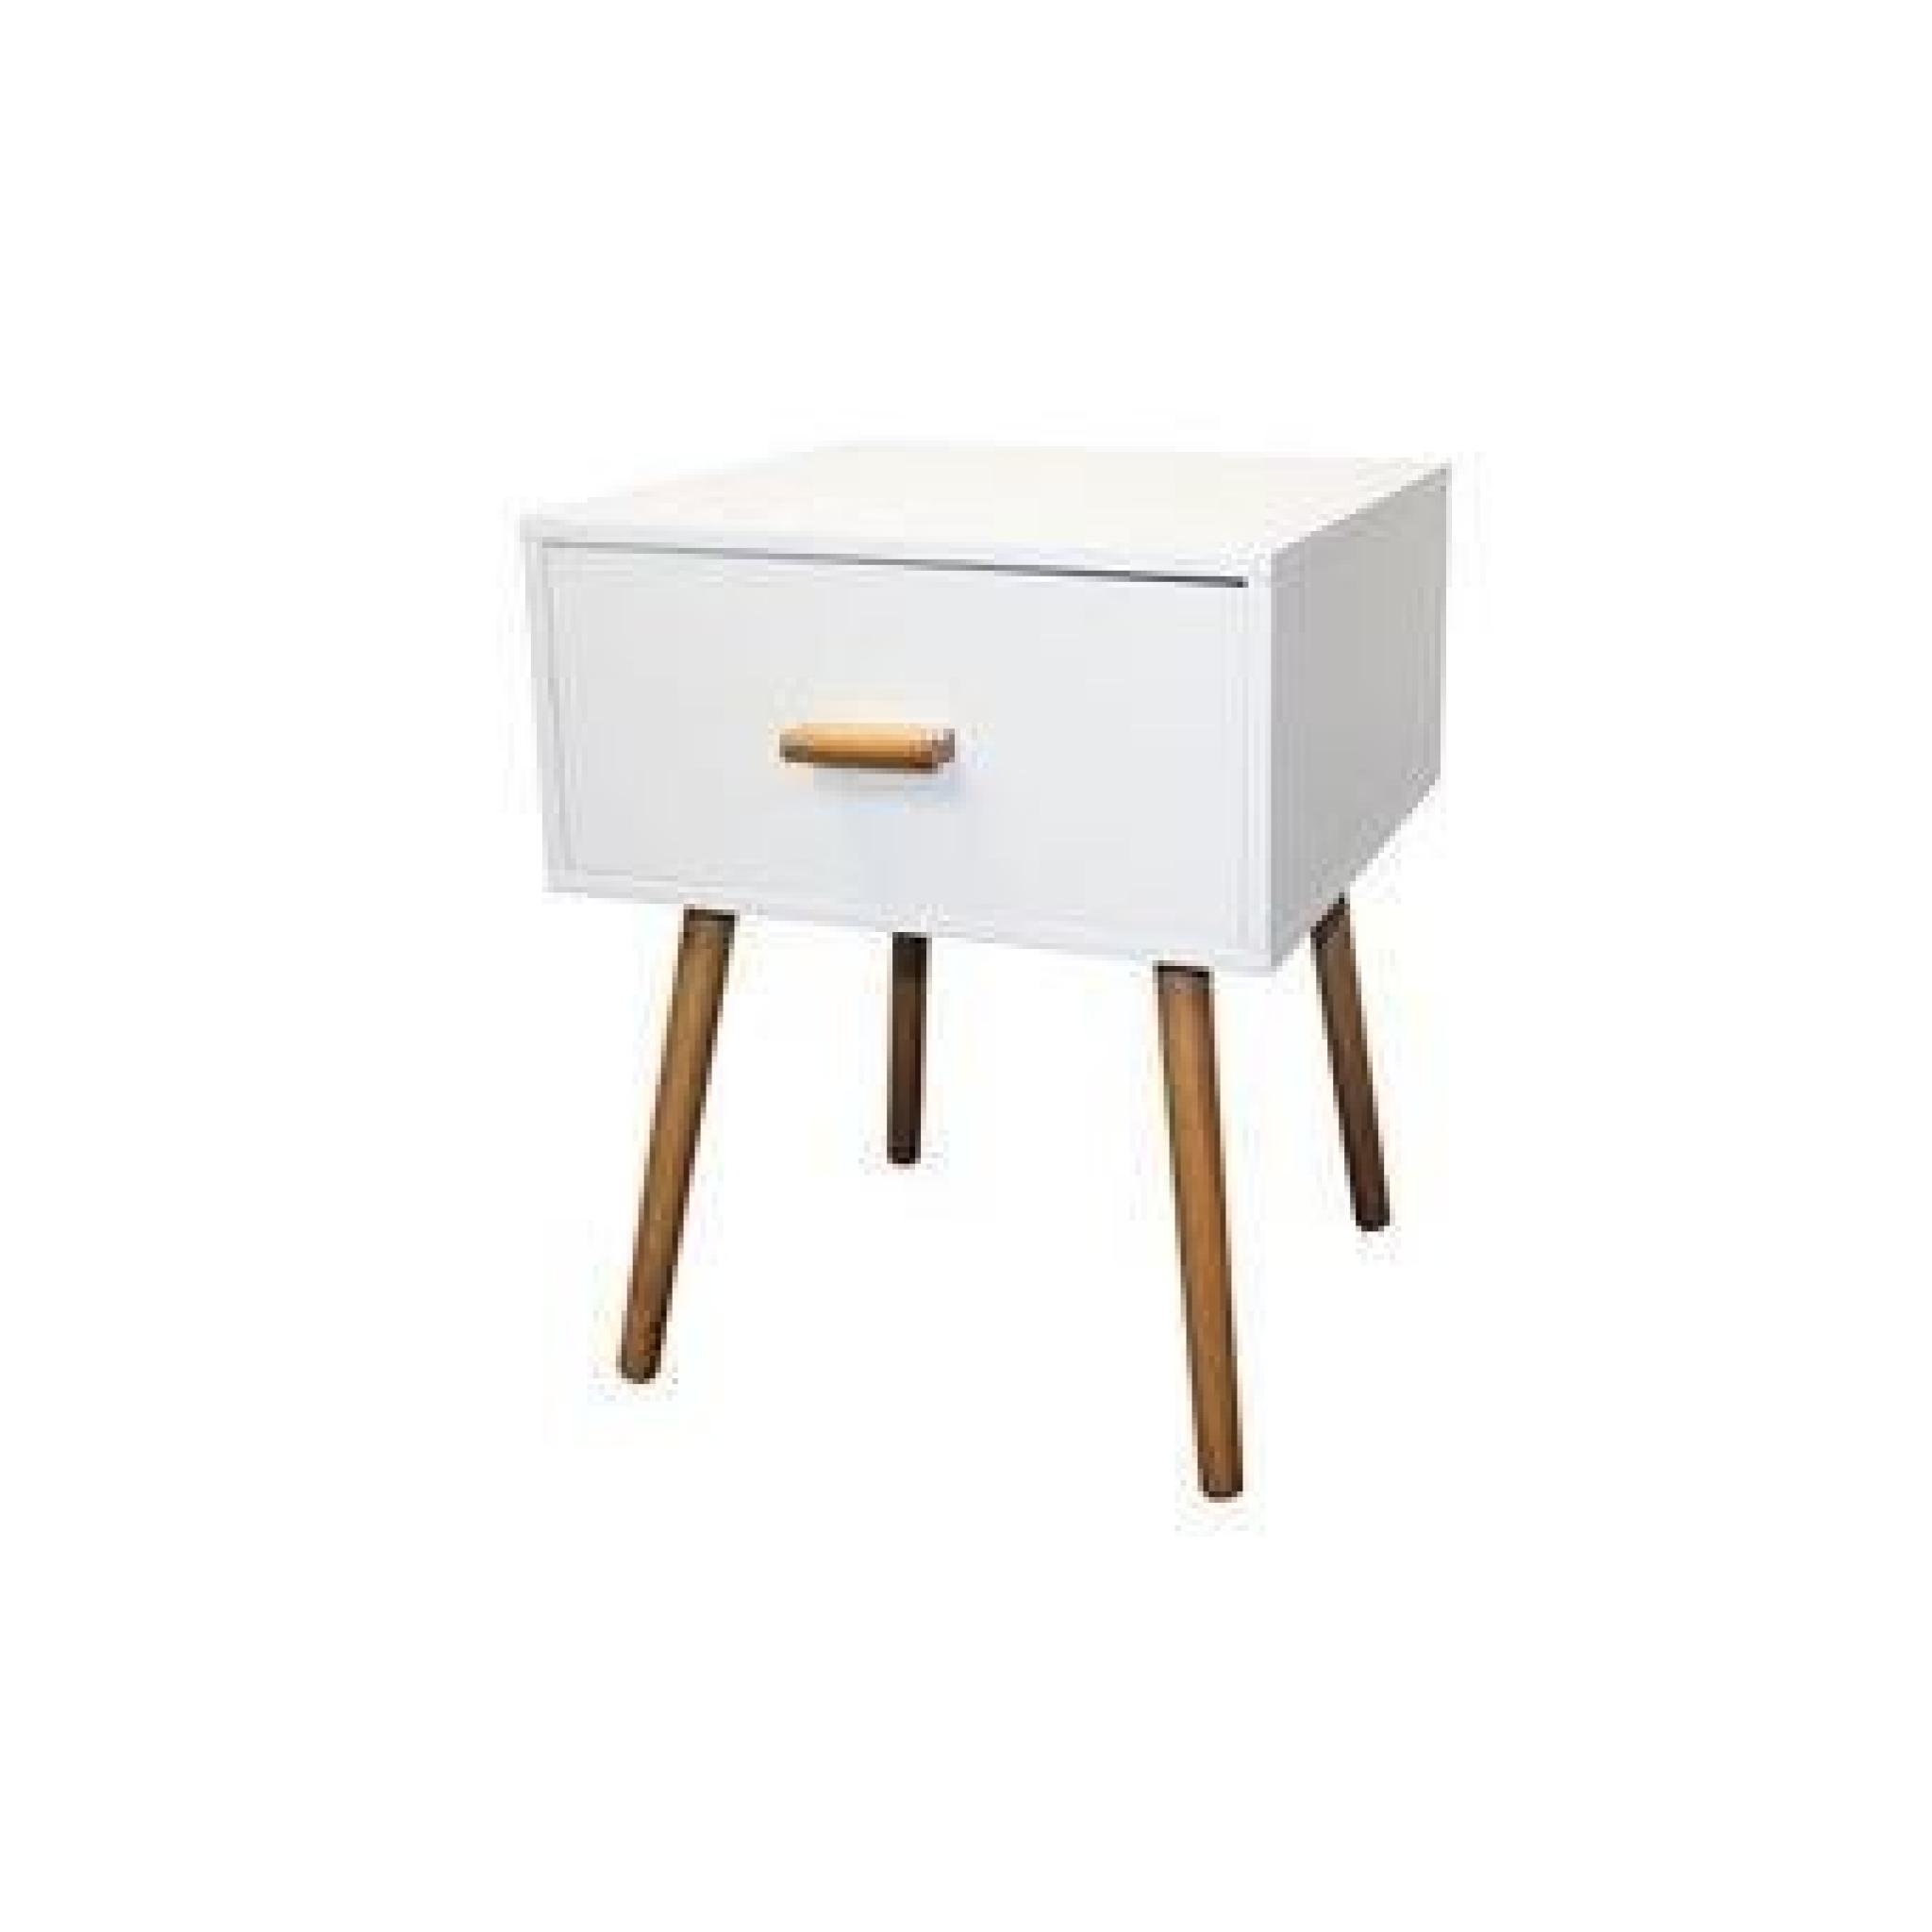 Table de chevet blanc design scandinave achat vente for Table de chevet noir pas cher